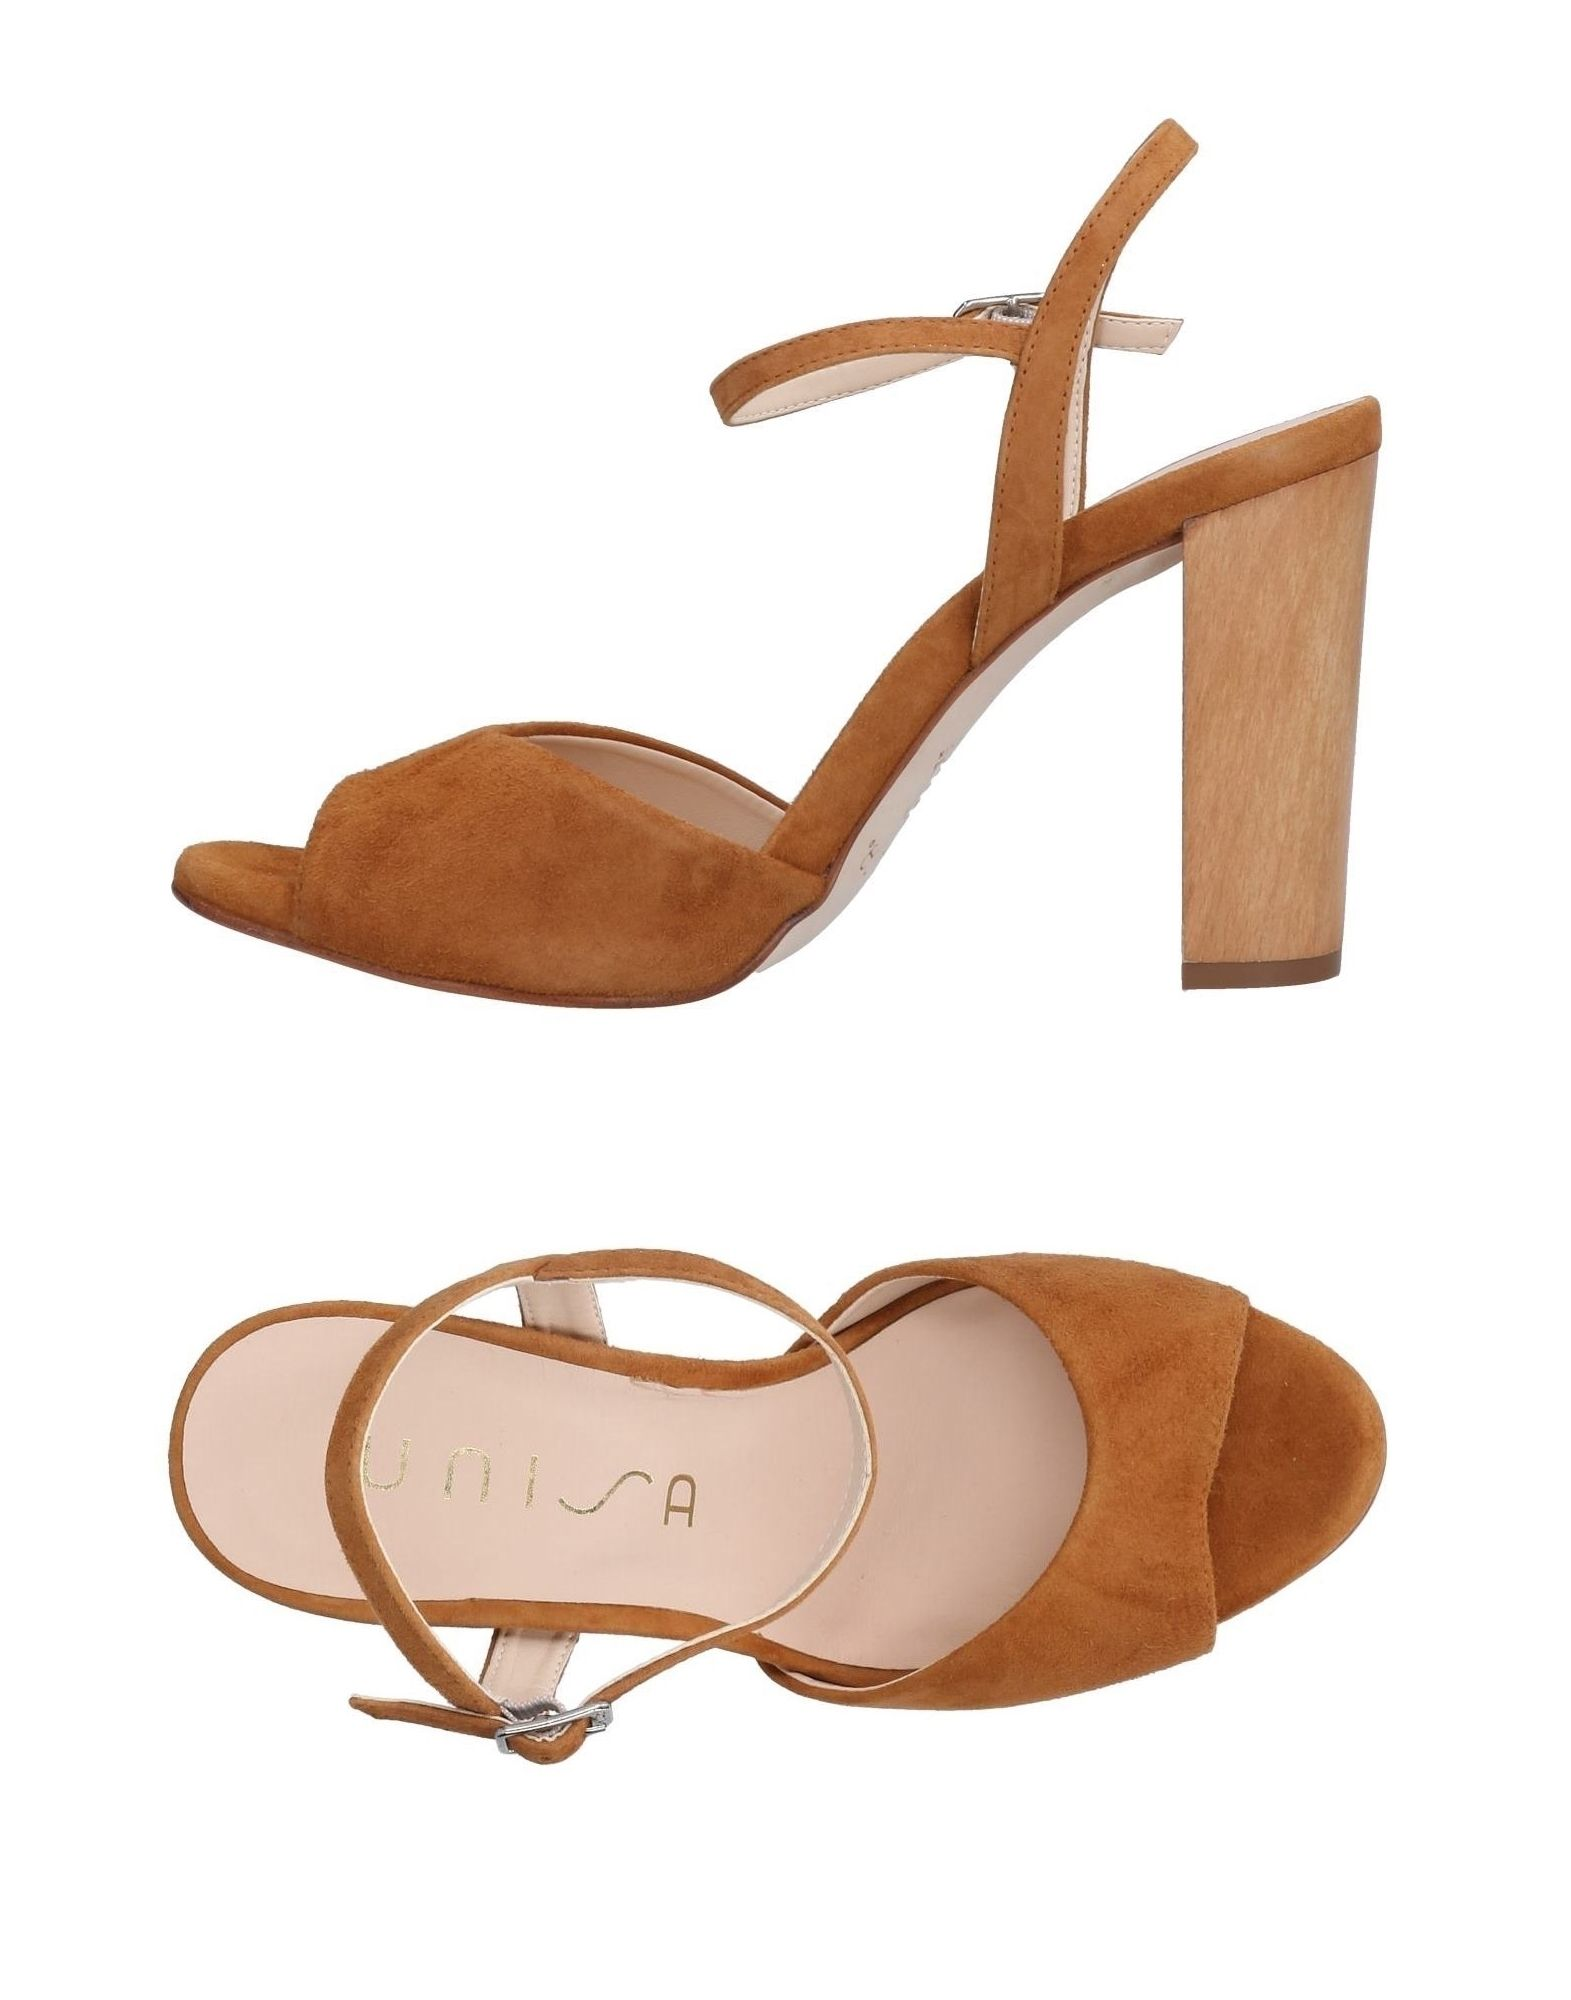 Unisa Sandals Sandals - Women Unisa Sandals Unisa online on  Canada - 11504705WT 3c8010